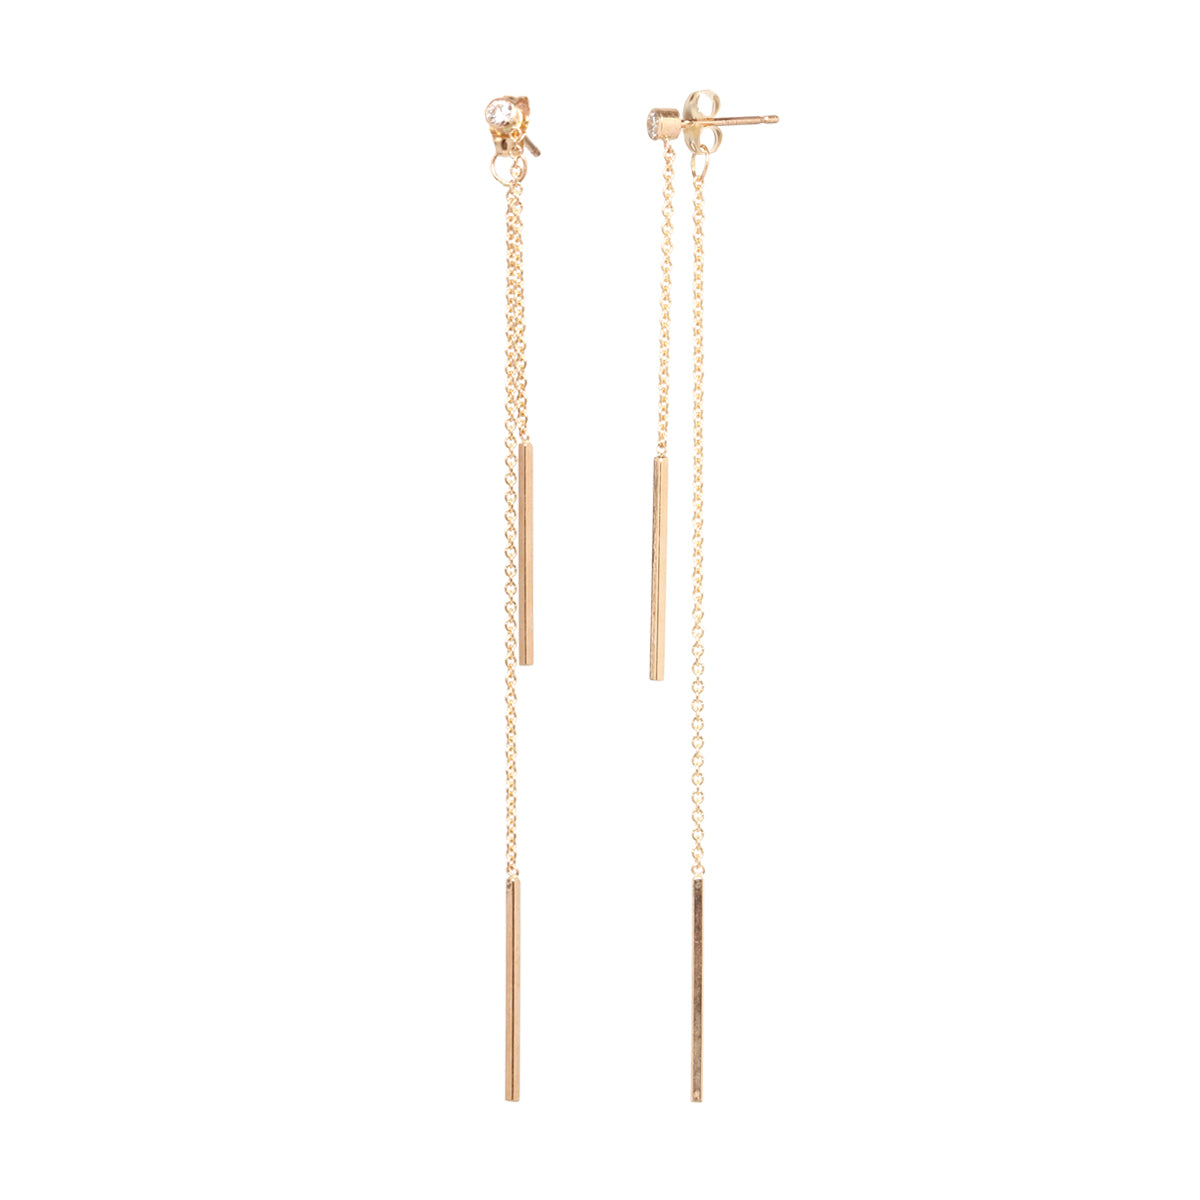 brands chain earrings long mck releve gold collections products